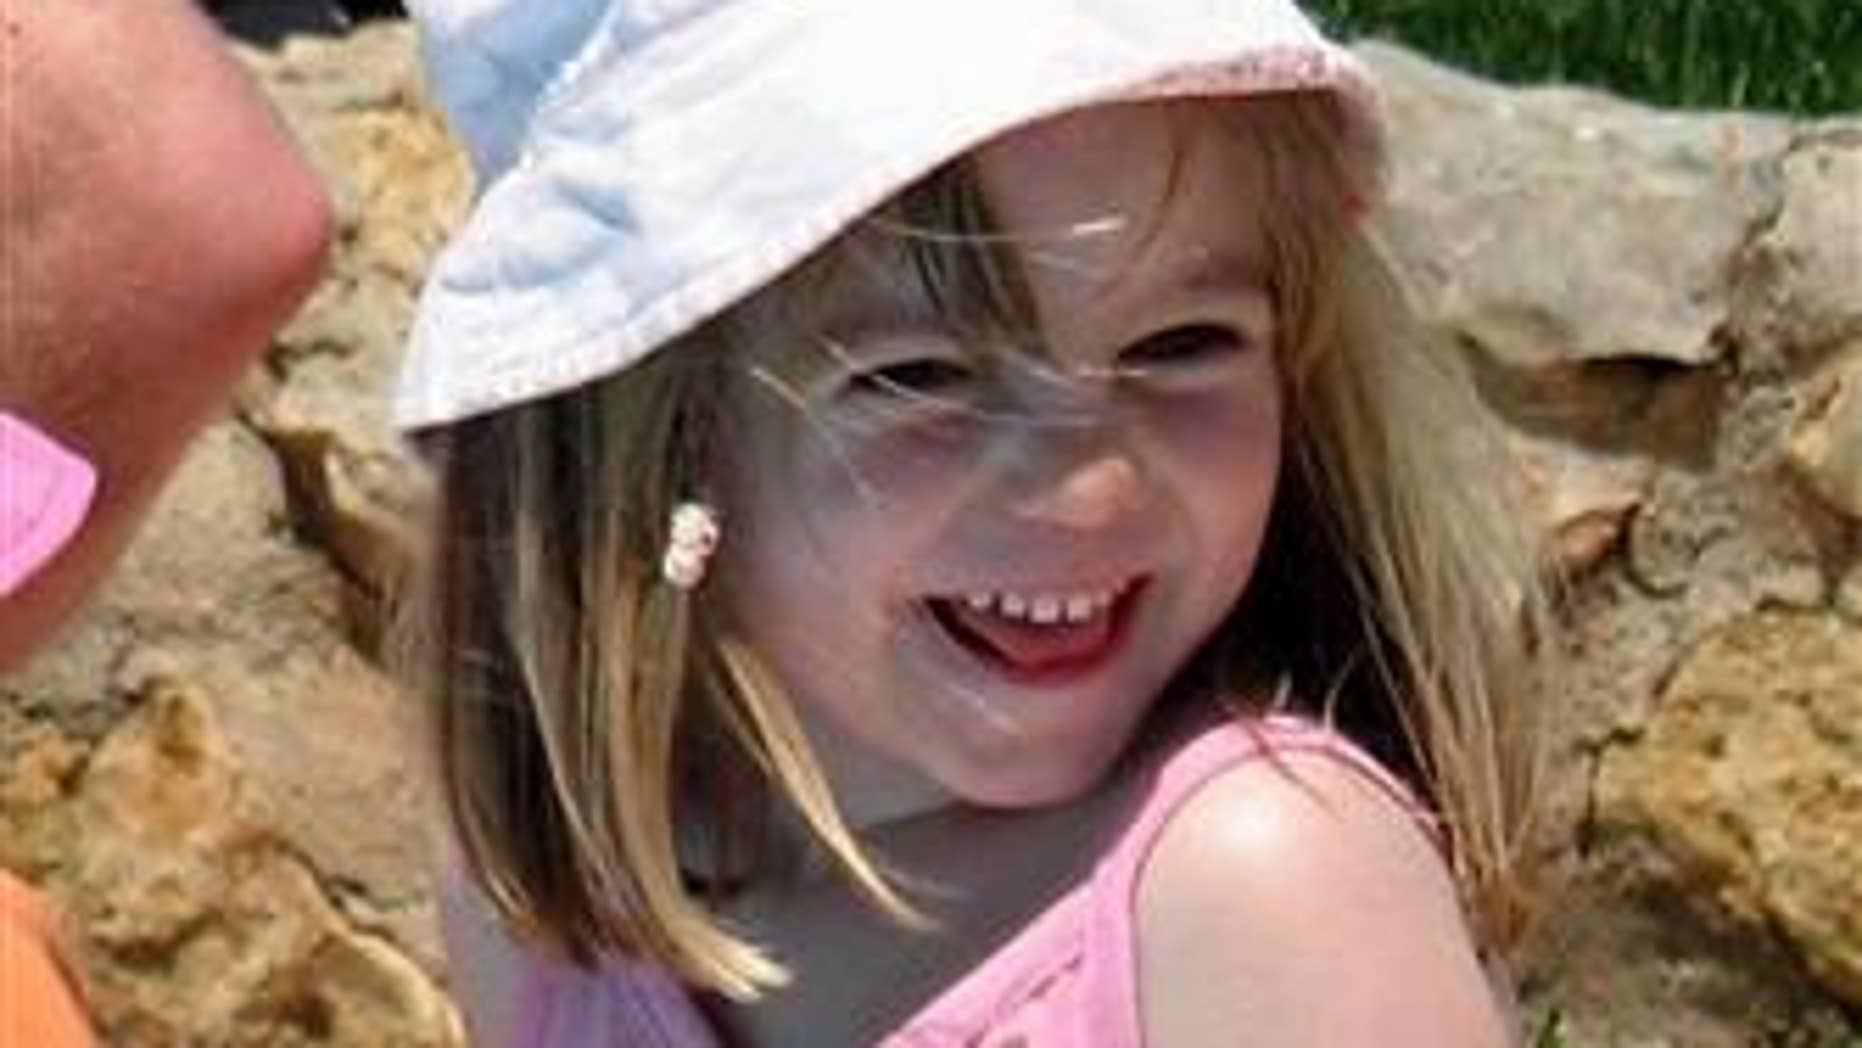 McCann is pictured on the day she disappeared from the family's holiday apartment in Praia da Luz, Portugal.